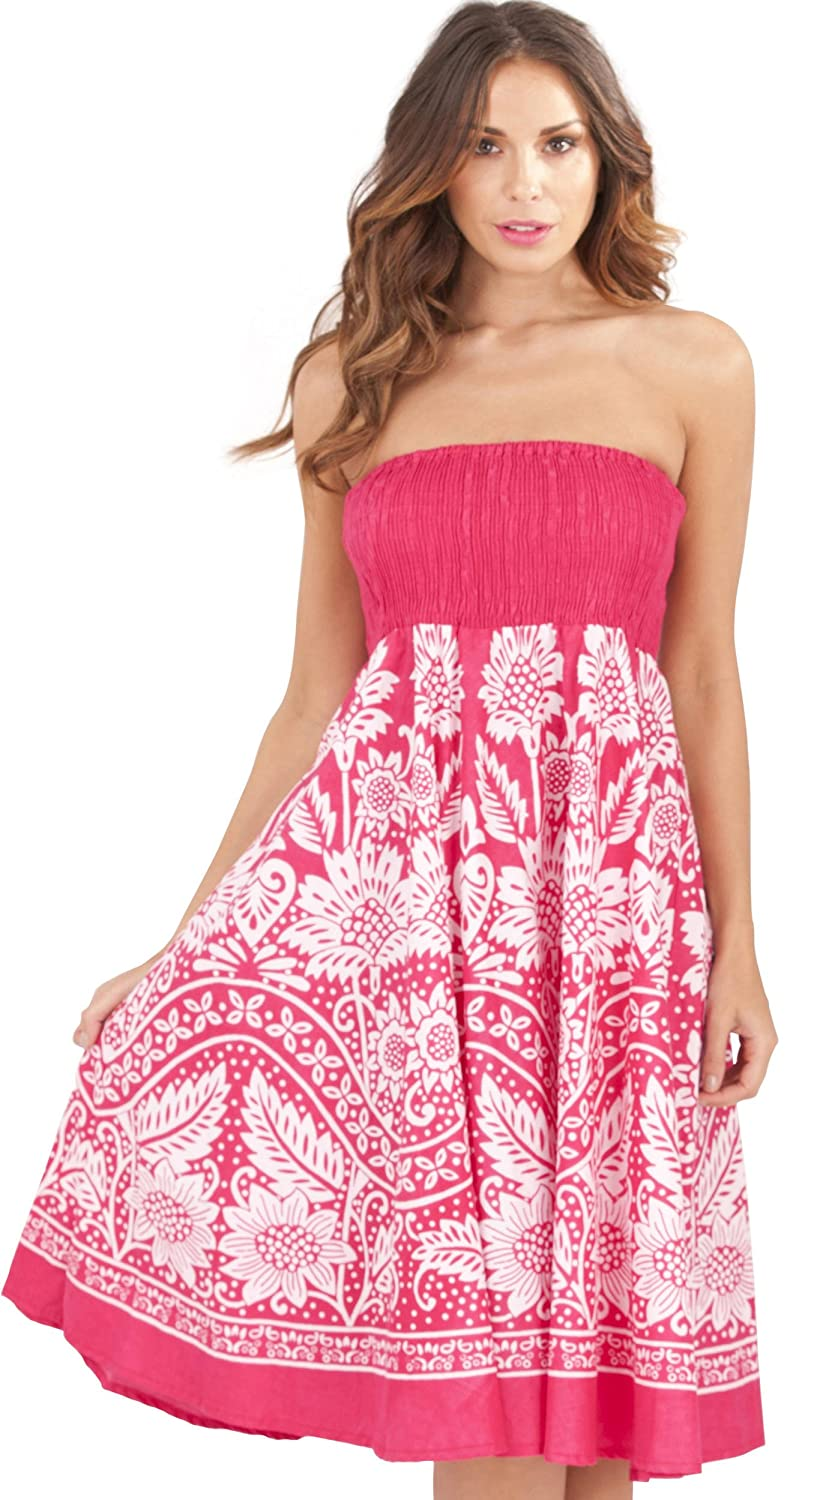 Ladies 100% Cotton Paisley & Dotted Print 2 in 1 Bandeau Summer Dress/Maxi Skirt, Pink Dannii Matthews d756